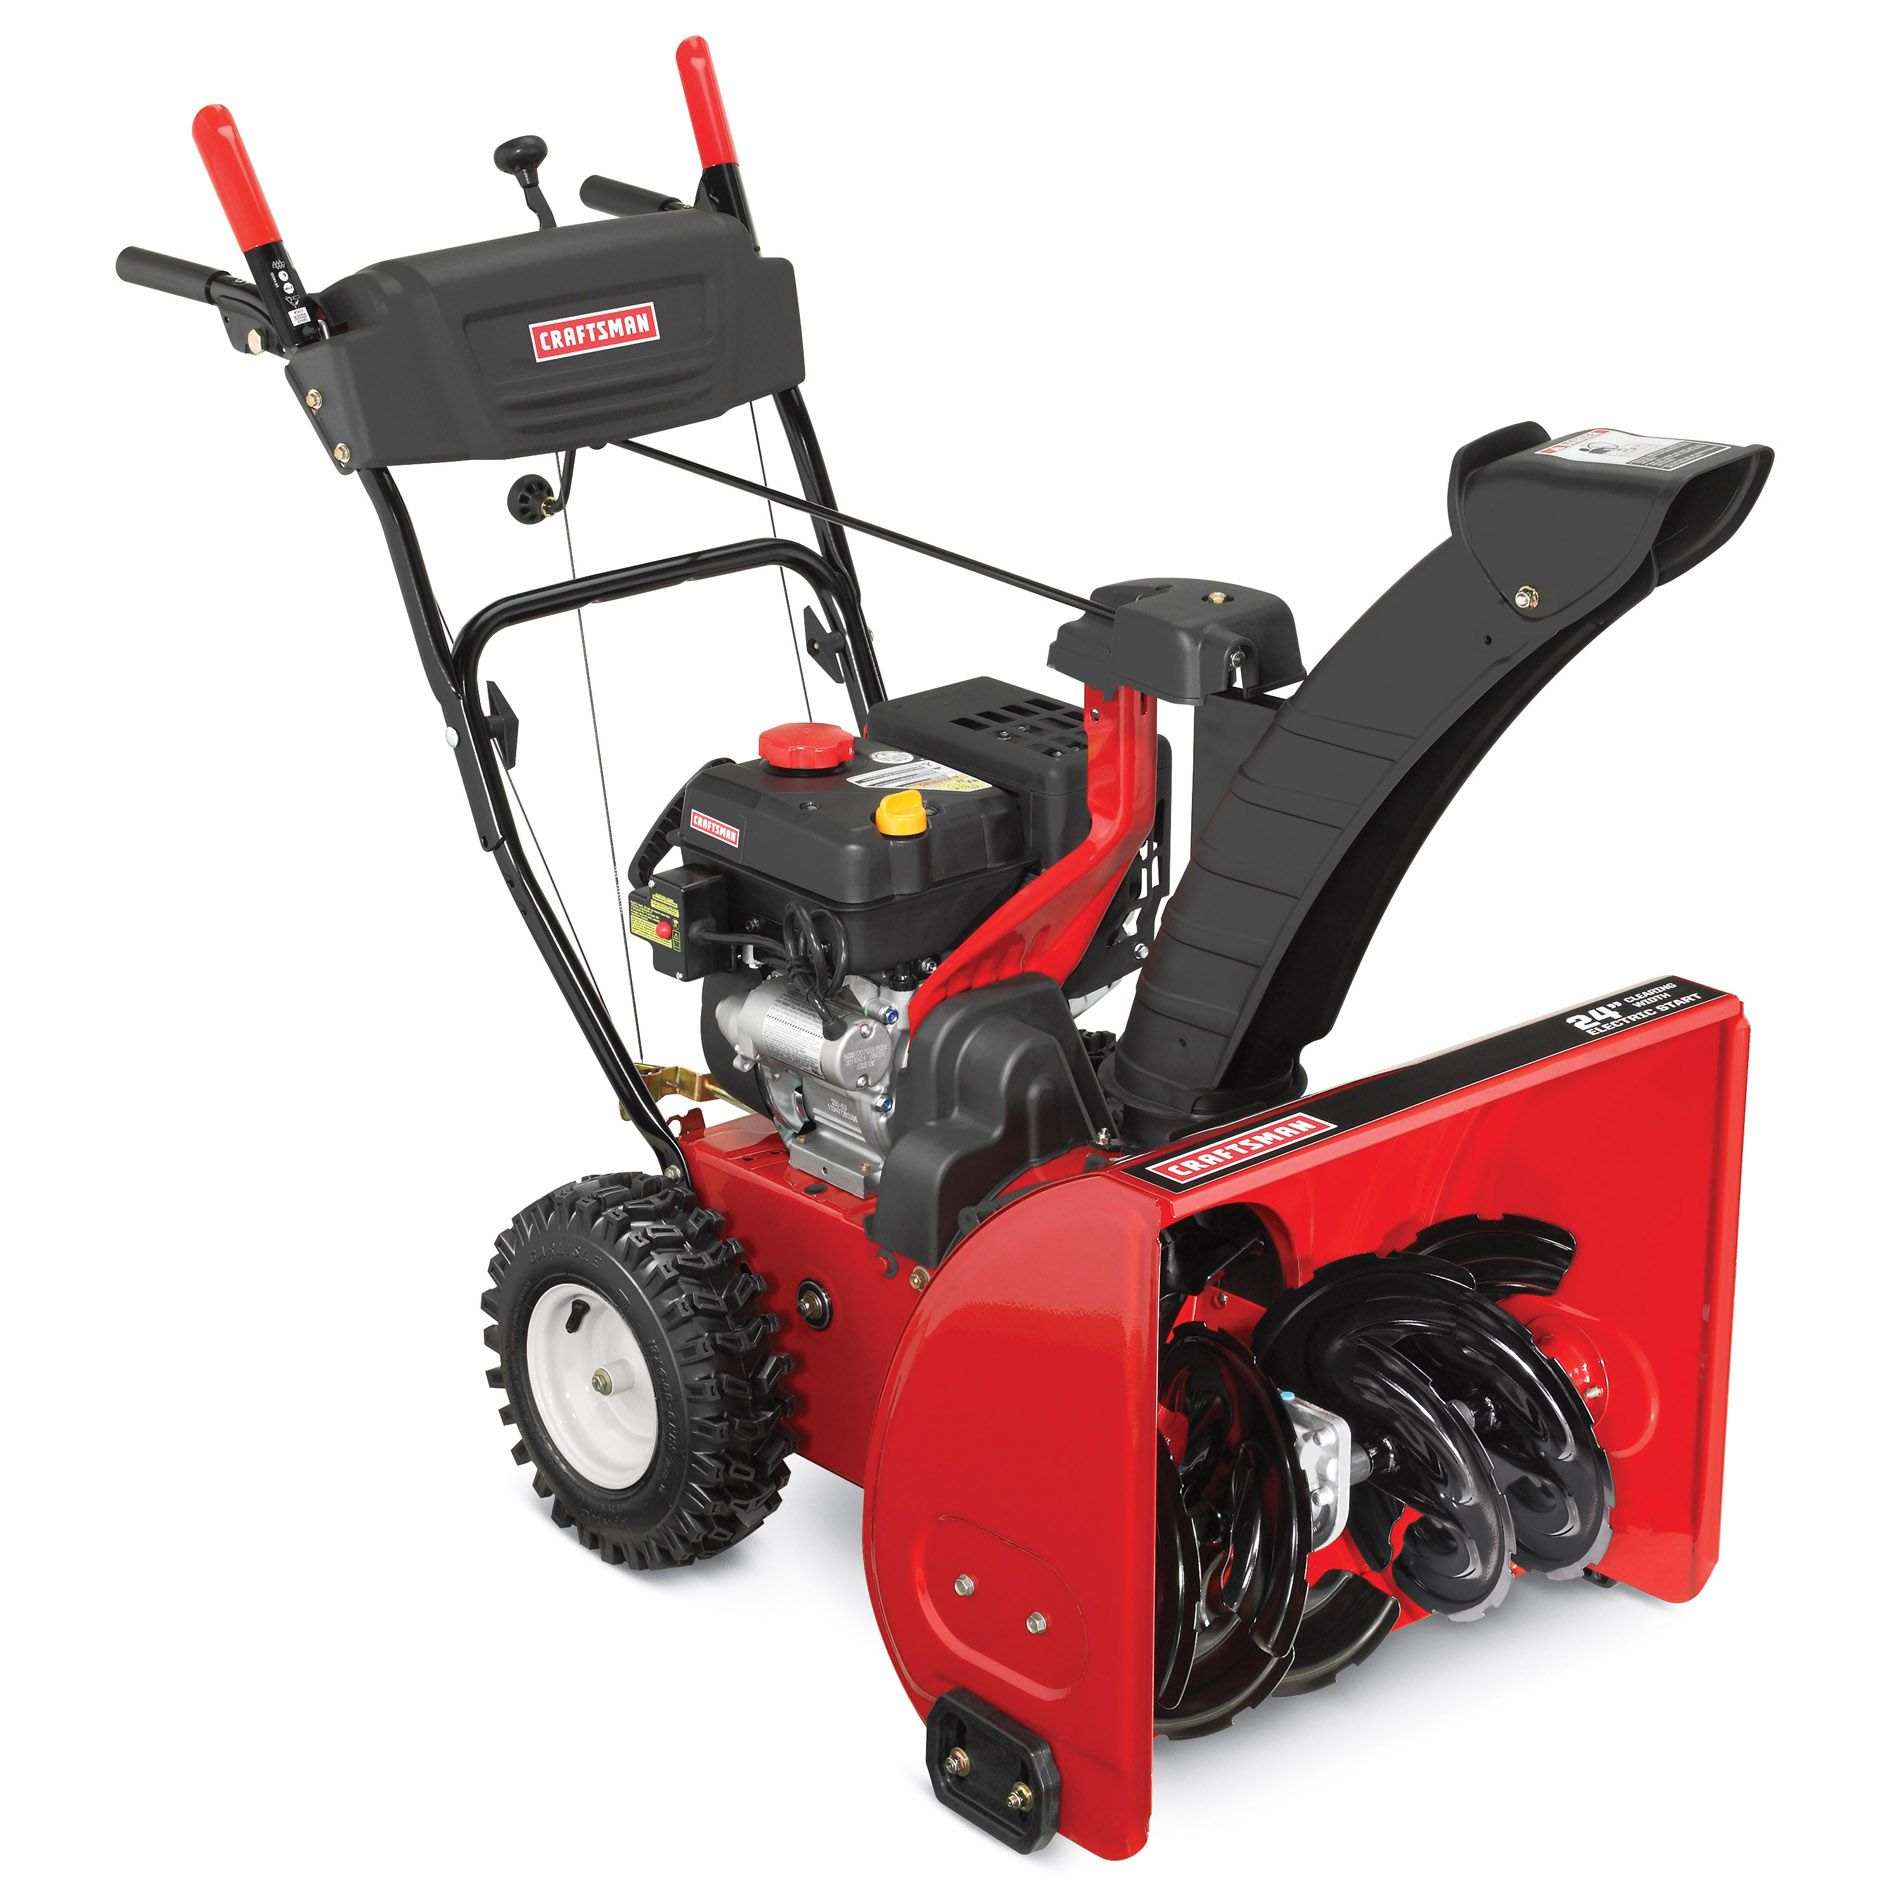 Craftsman 24-in. 208cc Dual-Stage Snowblower